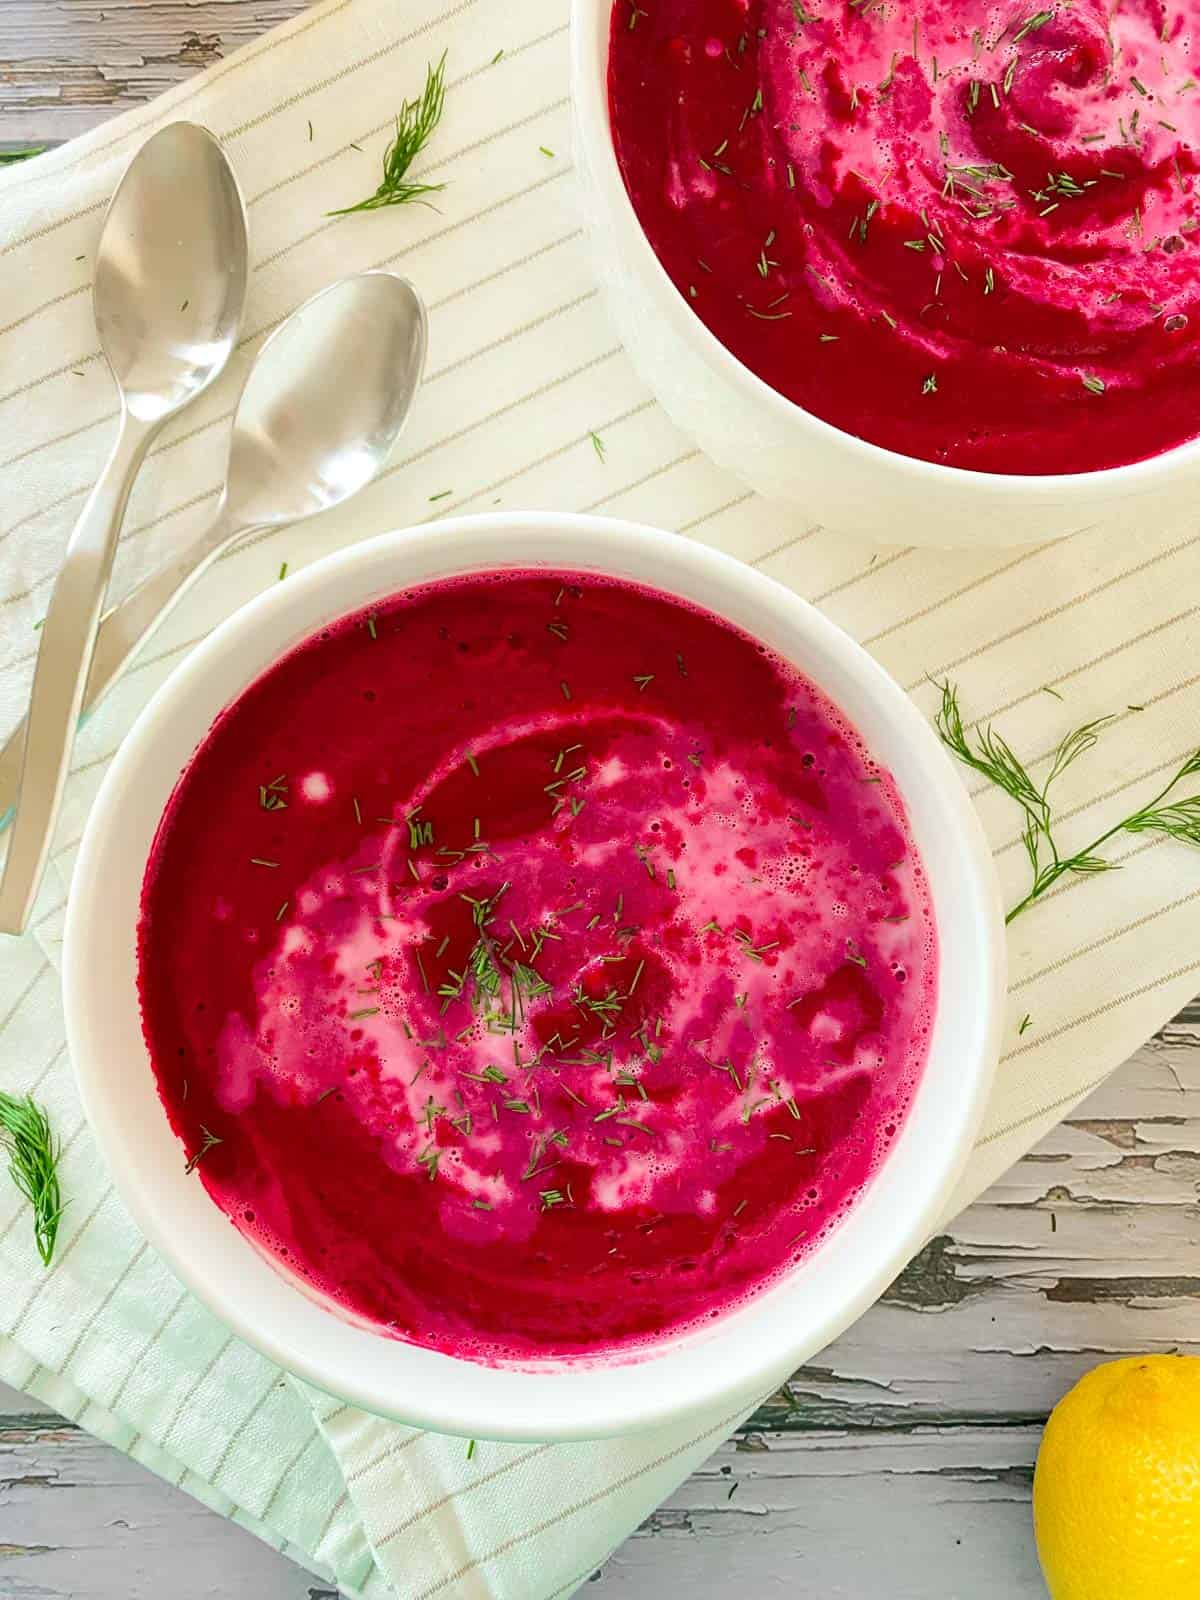 Two bowls filled with red soup with fresh dill on top.